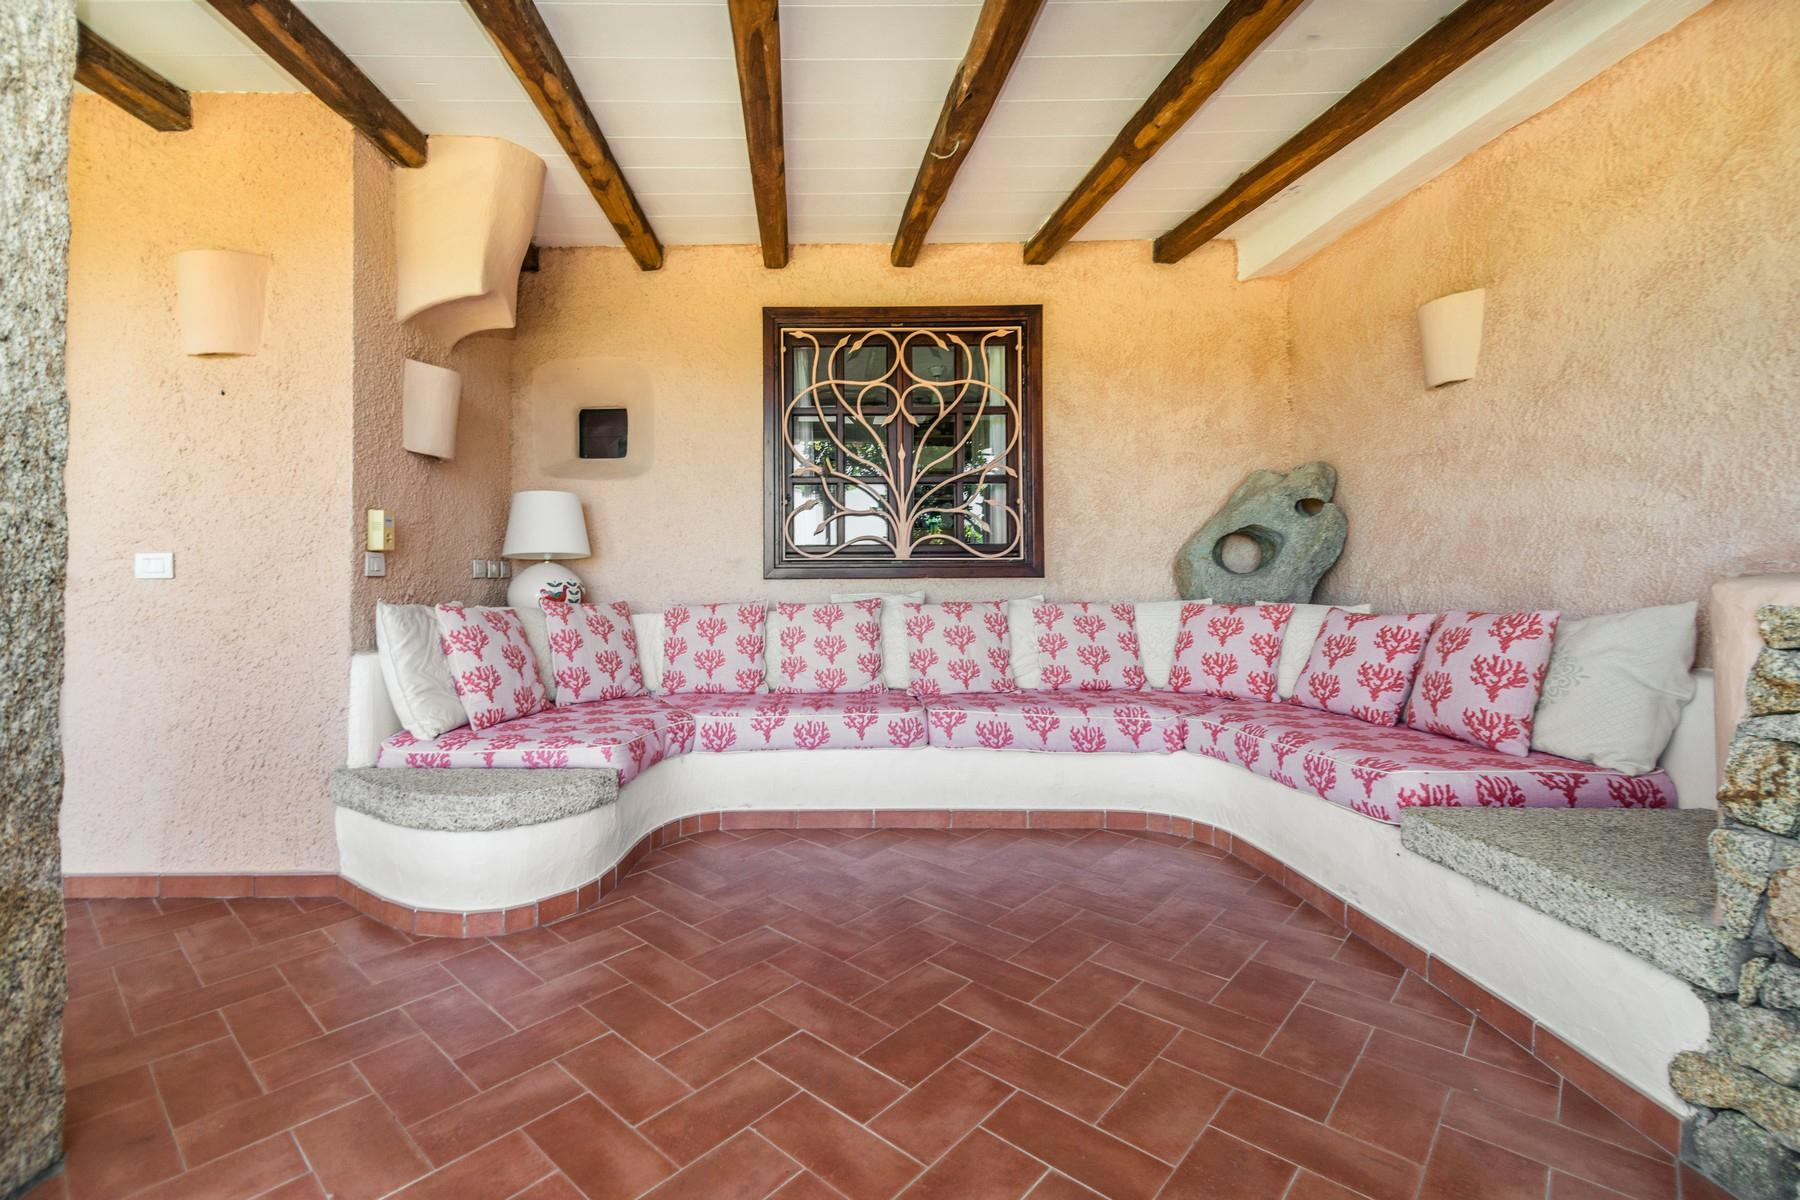 Baja Sardinia Mucchi Bianchi Delightful house with sea views - 4